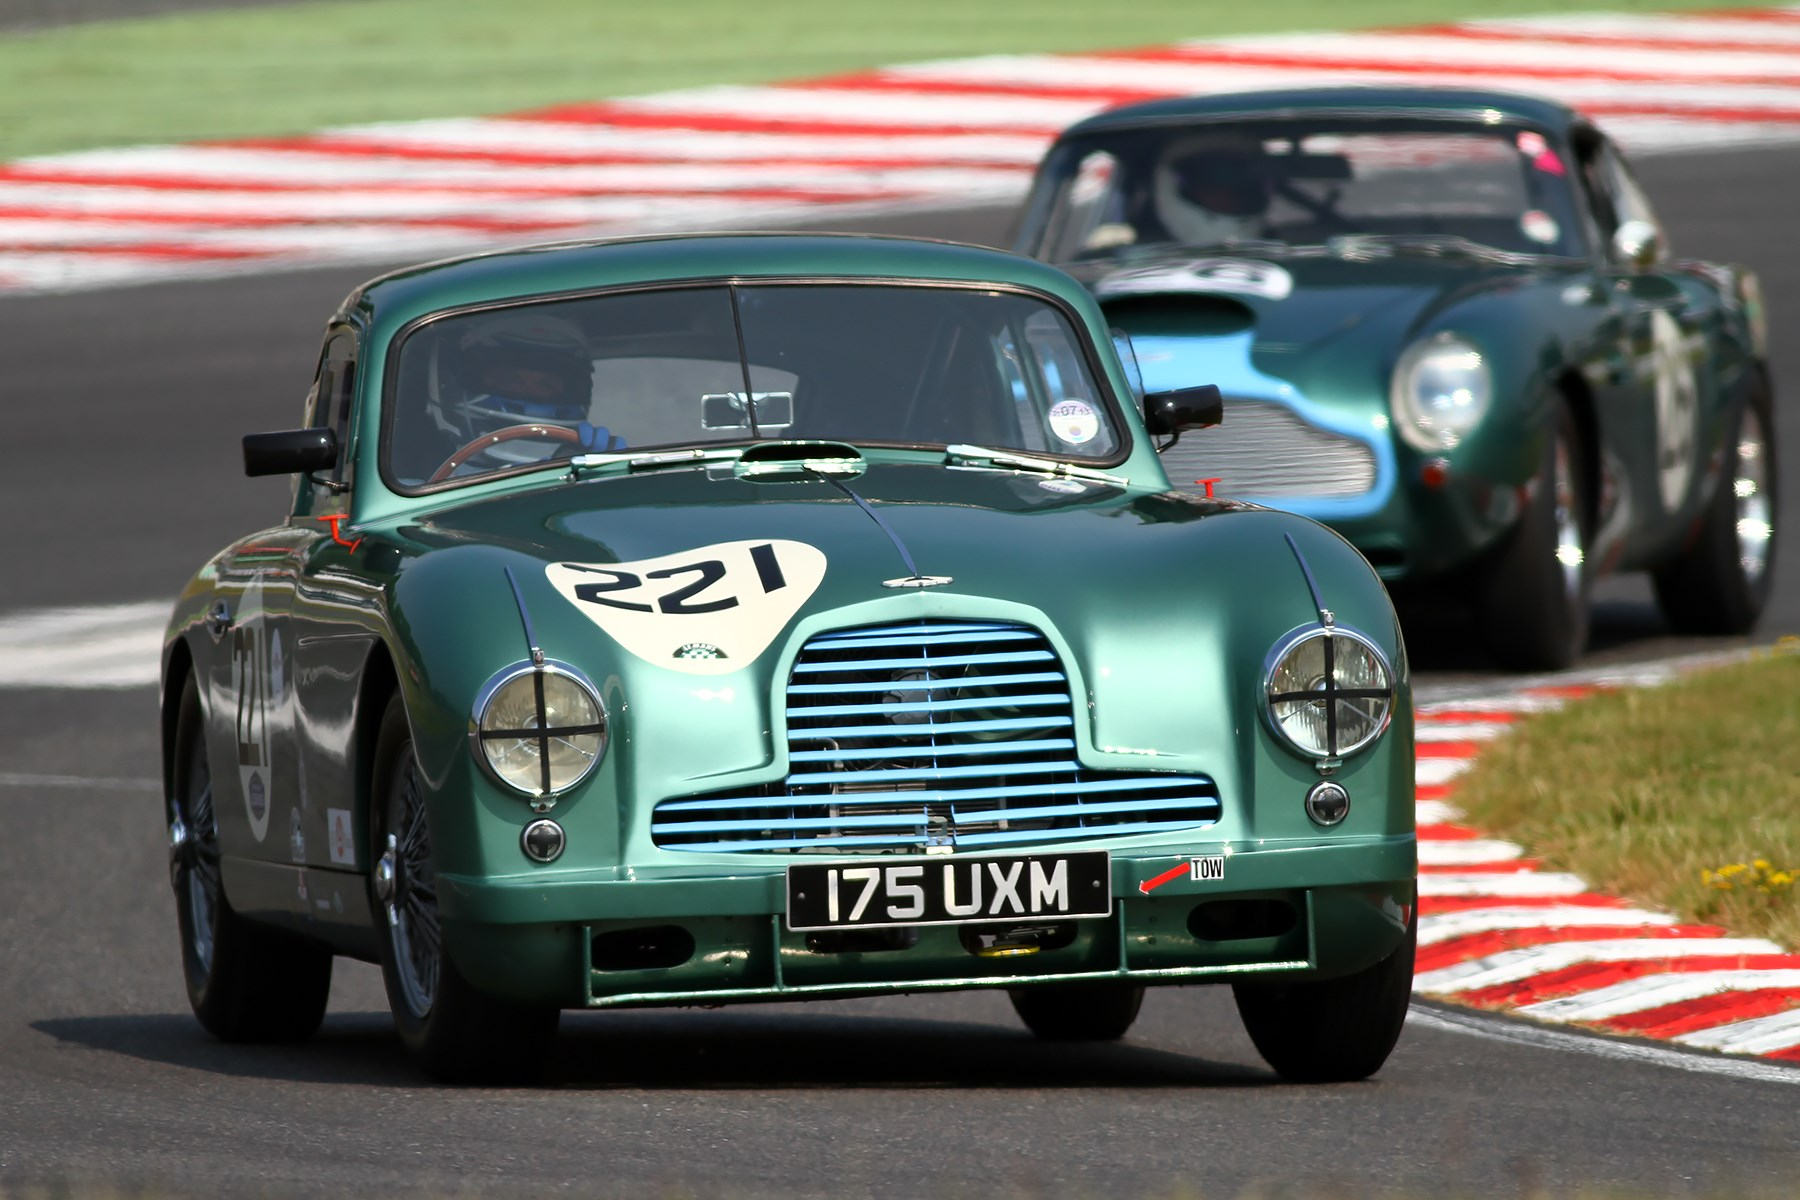 MSVR News - AMOC Racing launches 2018 season at Oulton Park